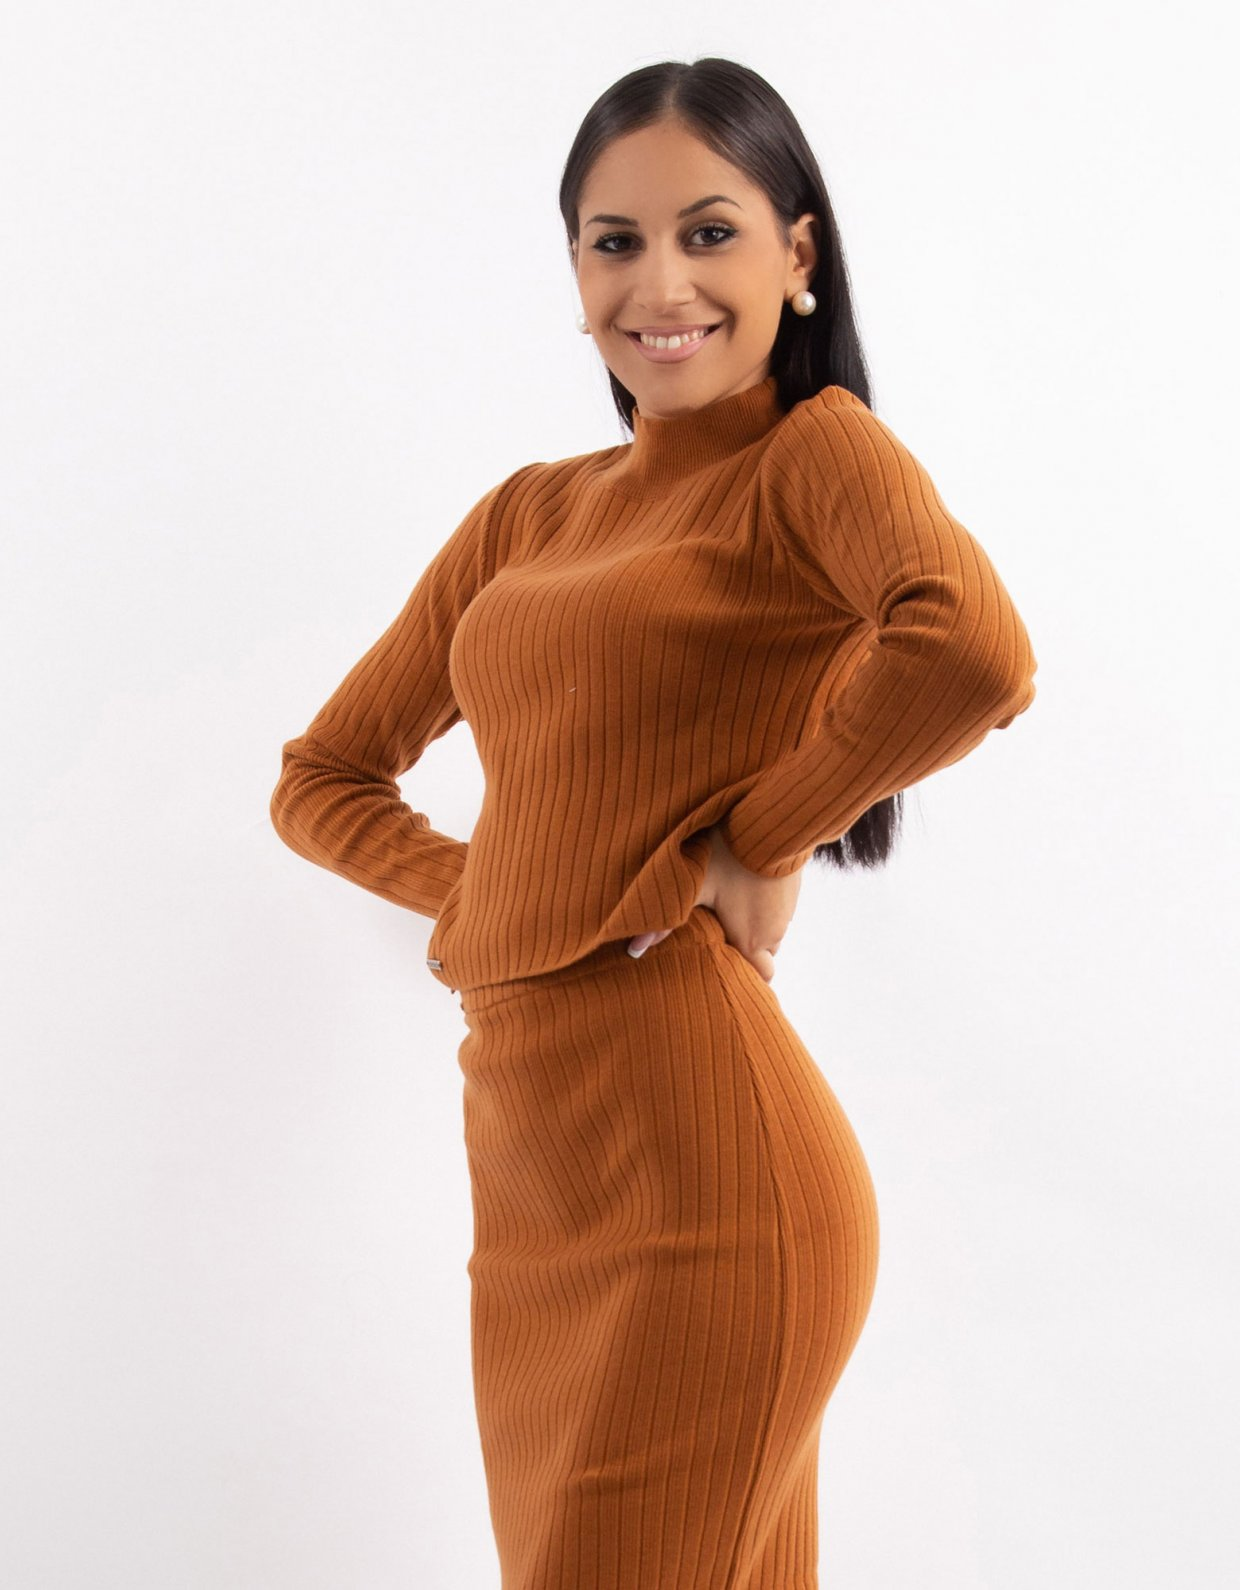 Combos Knitwear Combos W15 – Cinnamon rib turtleneck top